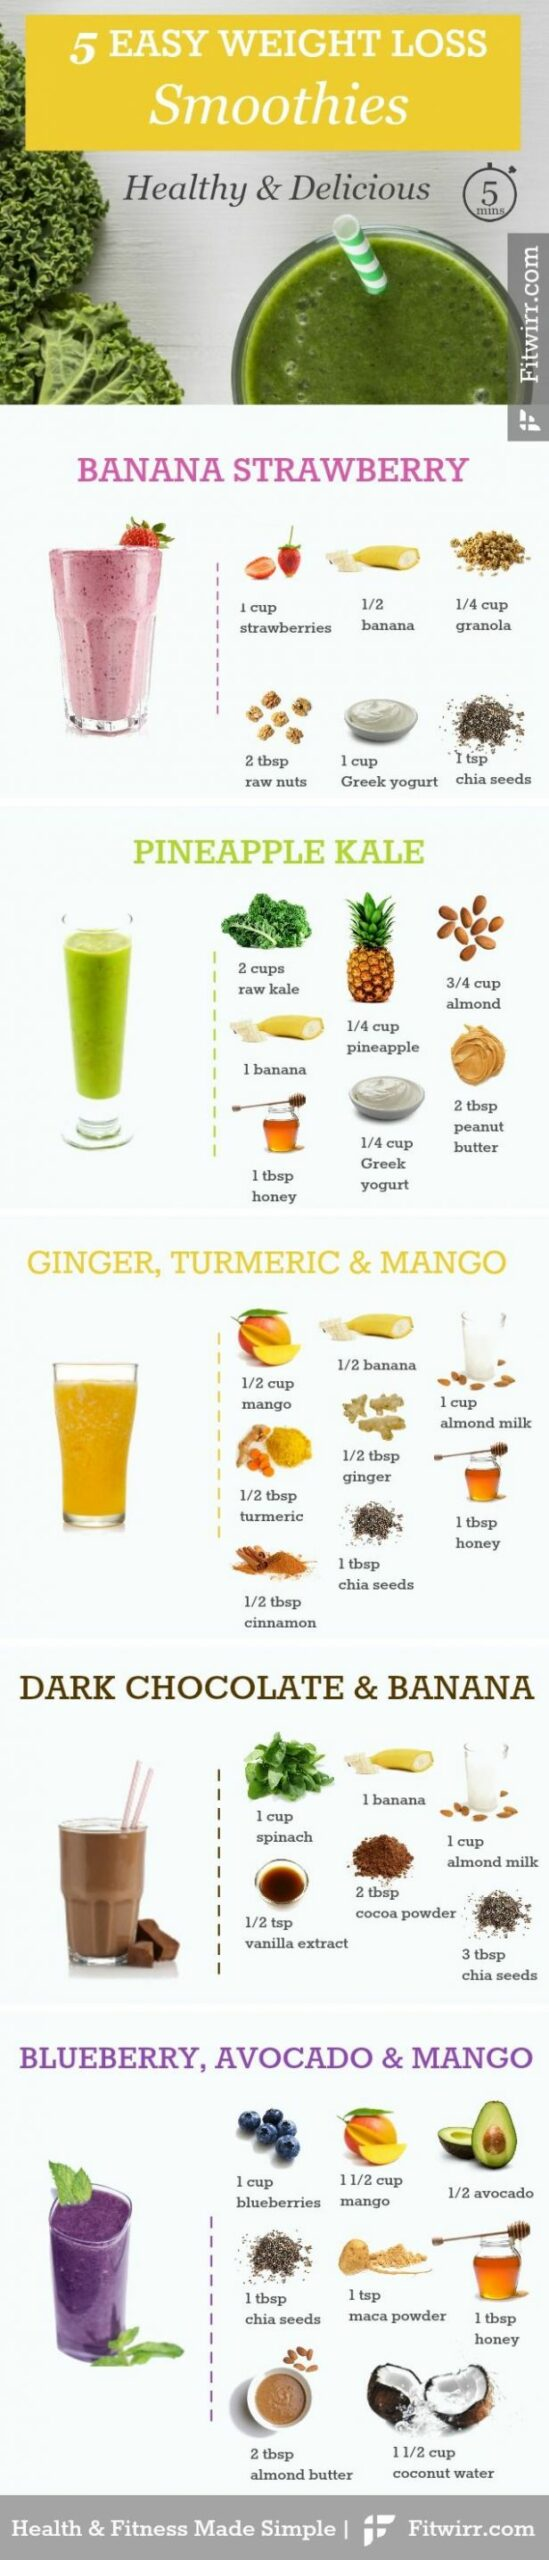 Pin auf smoothies - Recipes For Weight Loss Pinterest